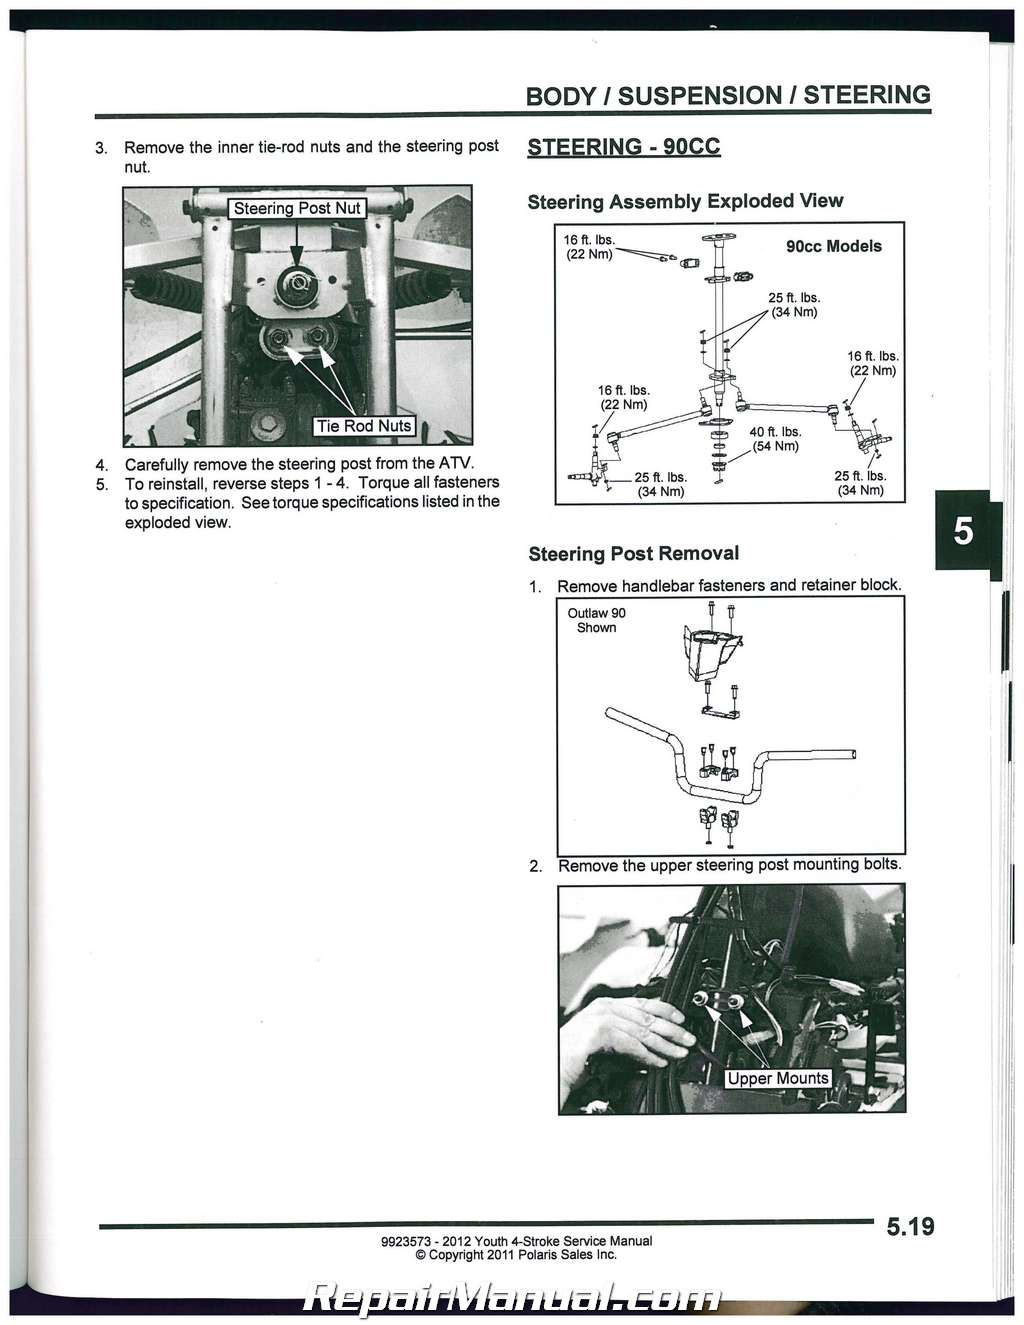 Polaris Sportsman 90 Service Manual 2012 Outlaw Wiring Diagram 50 And Rh Repairmanual Com Predator Electrical 2004